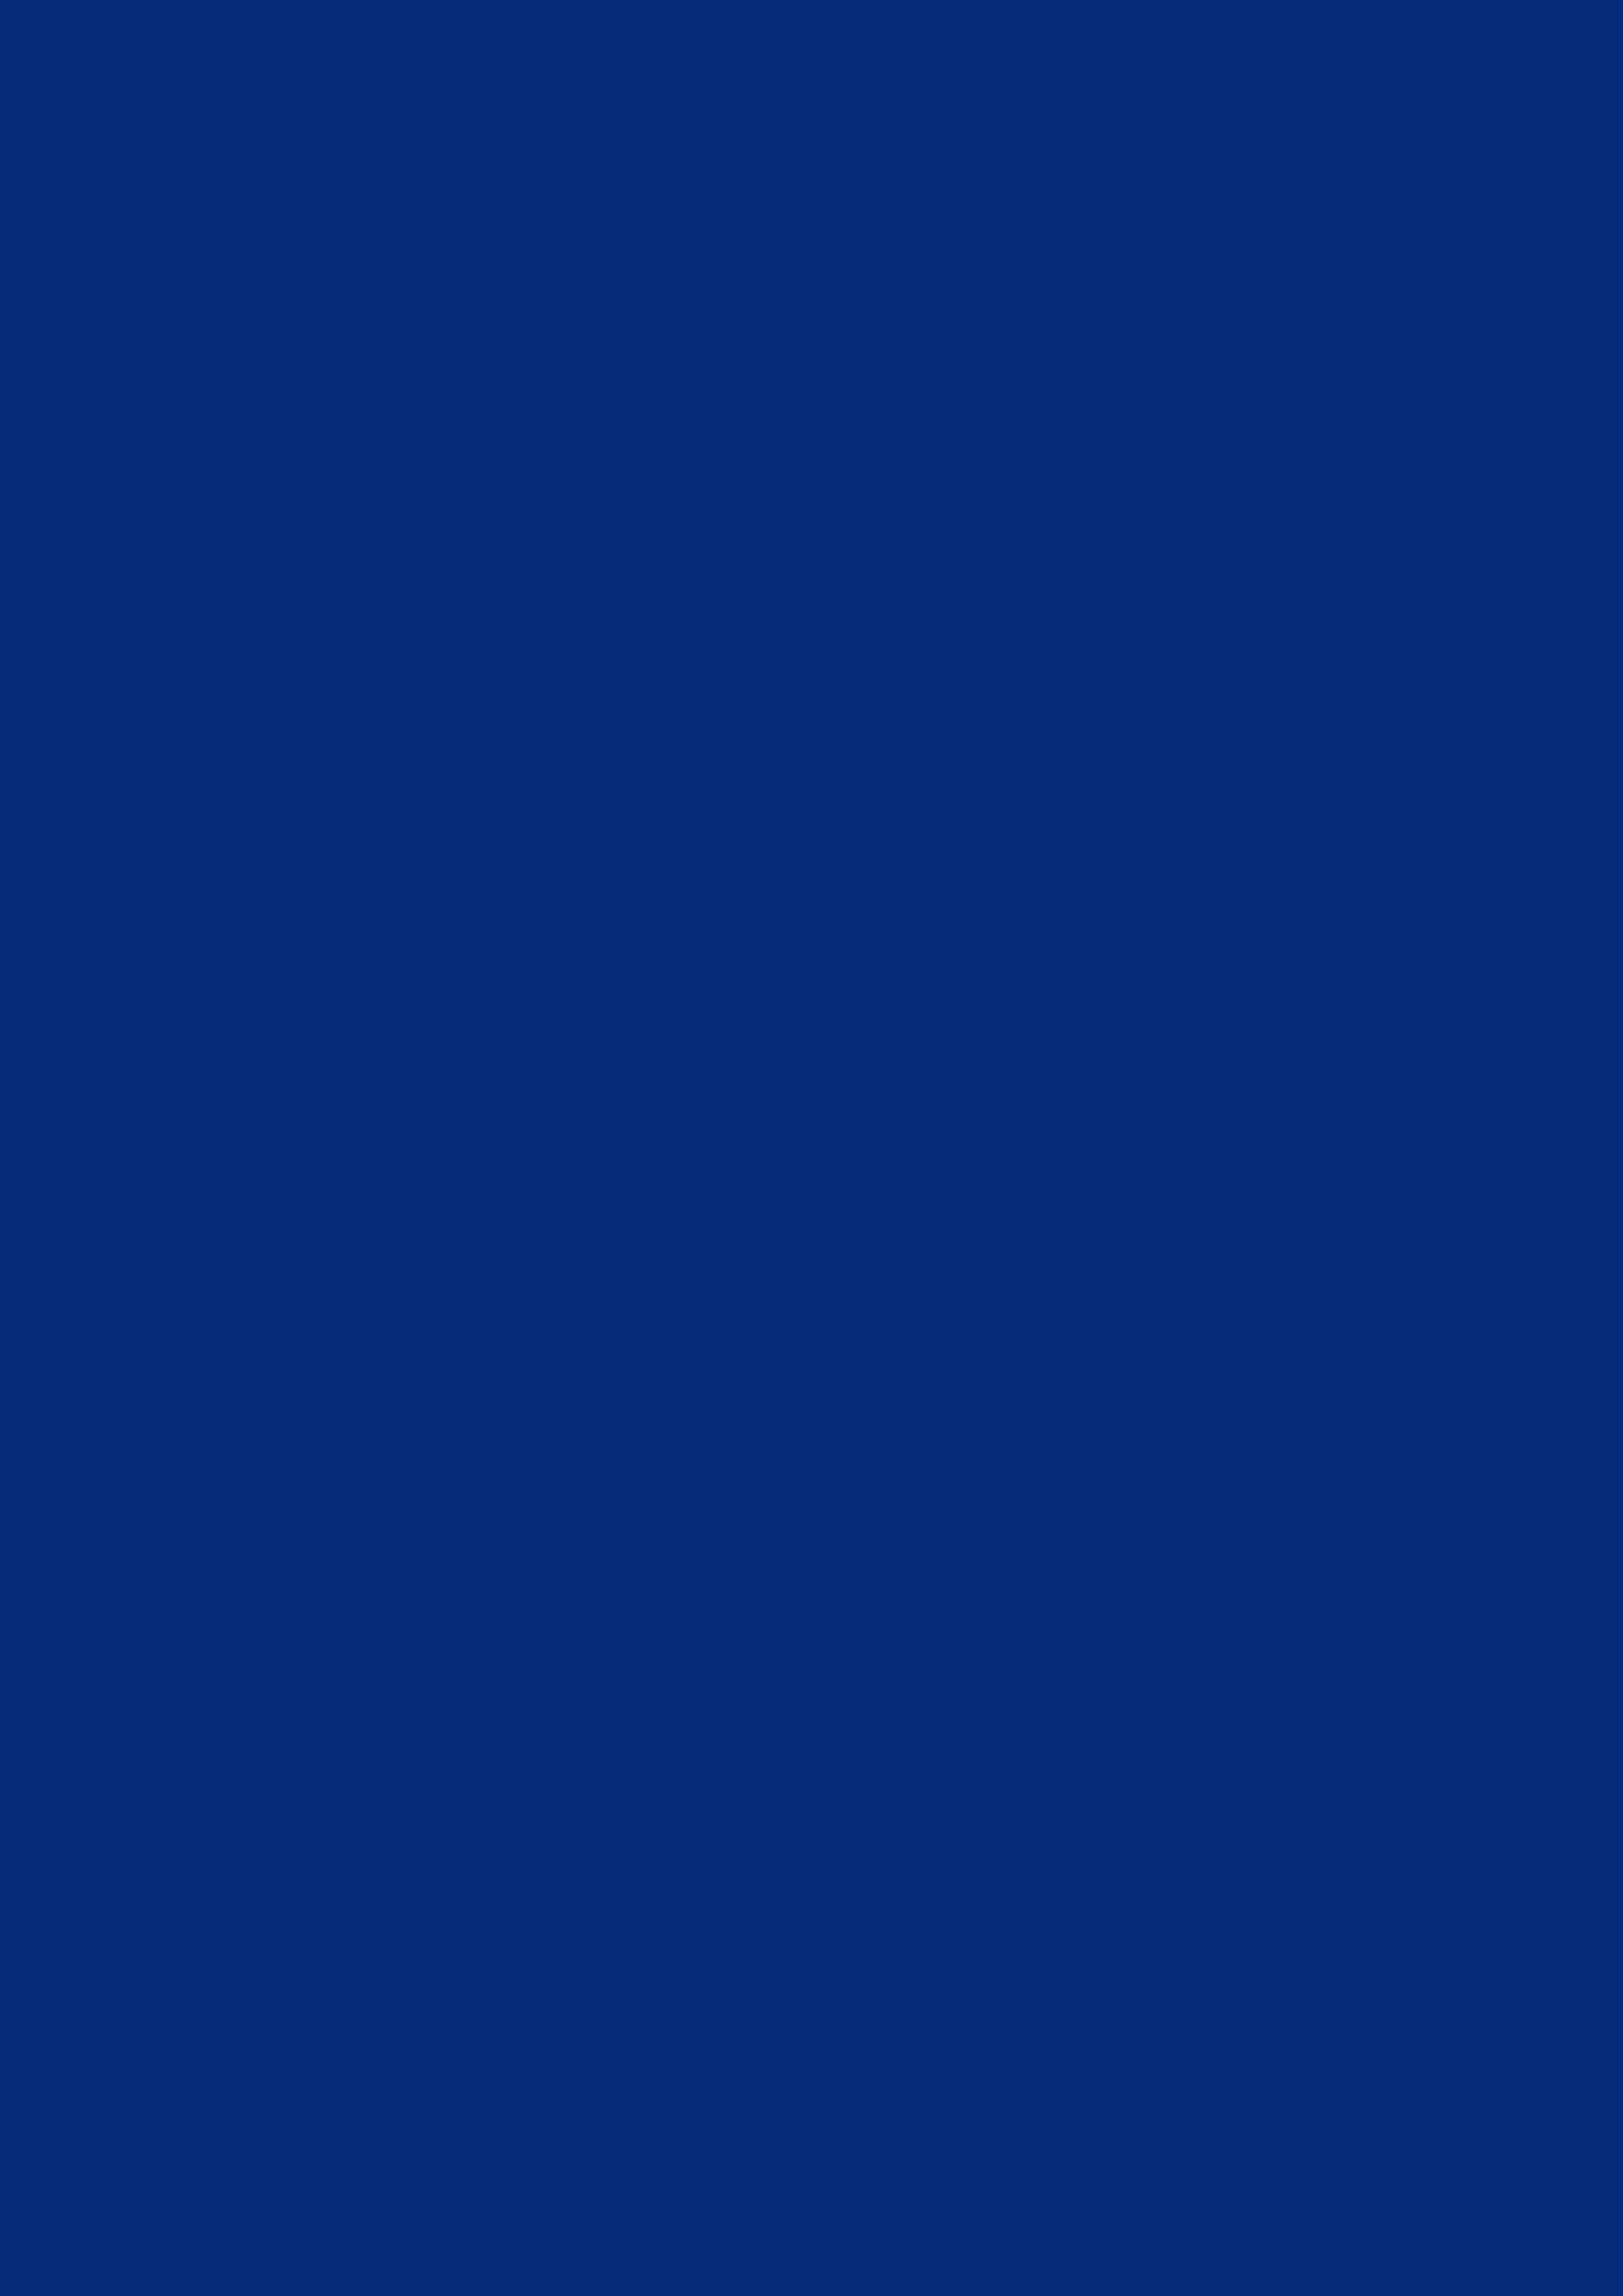 2480x3508 Catalina Blue Solid Color Background